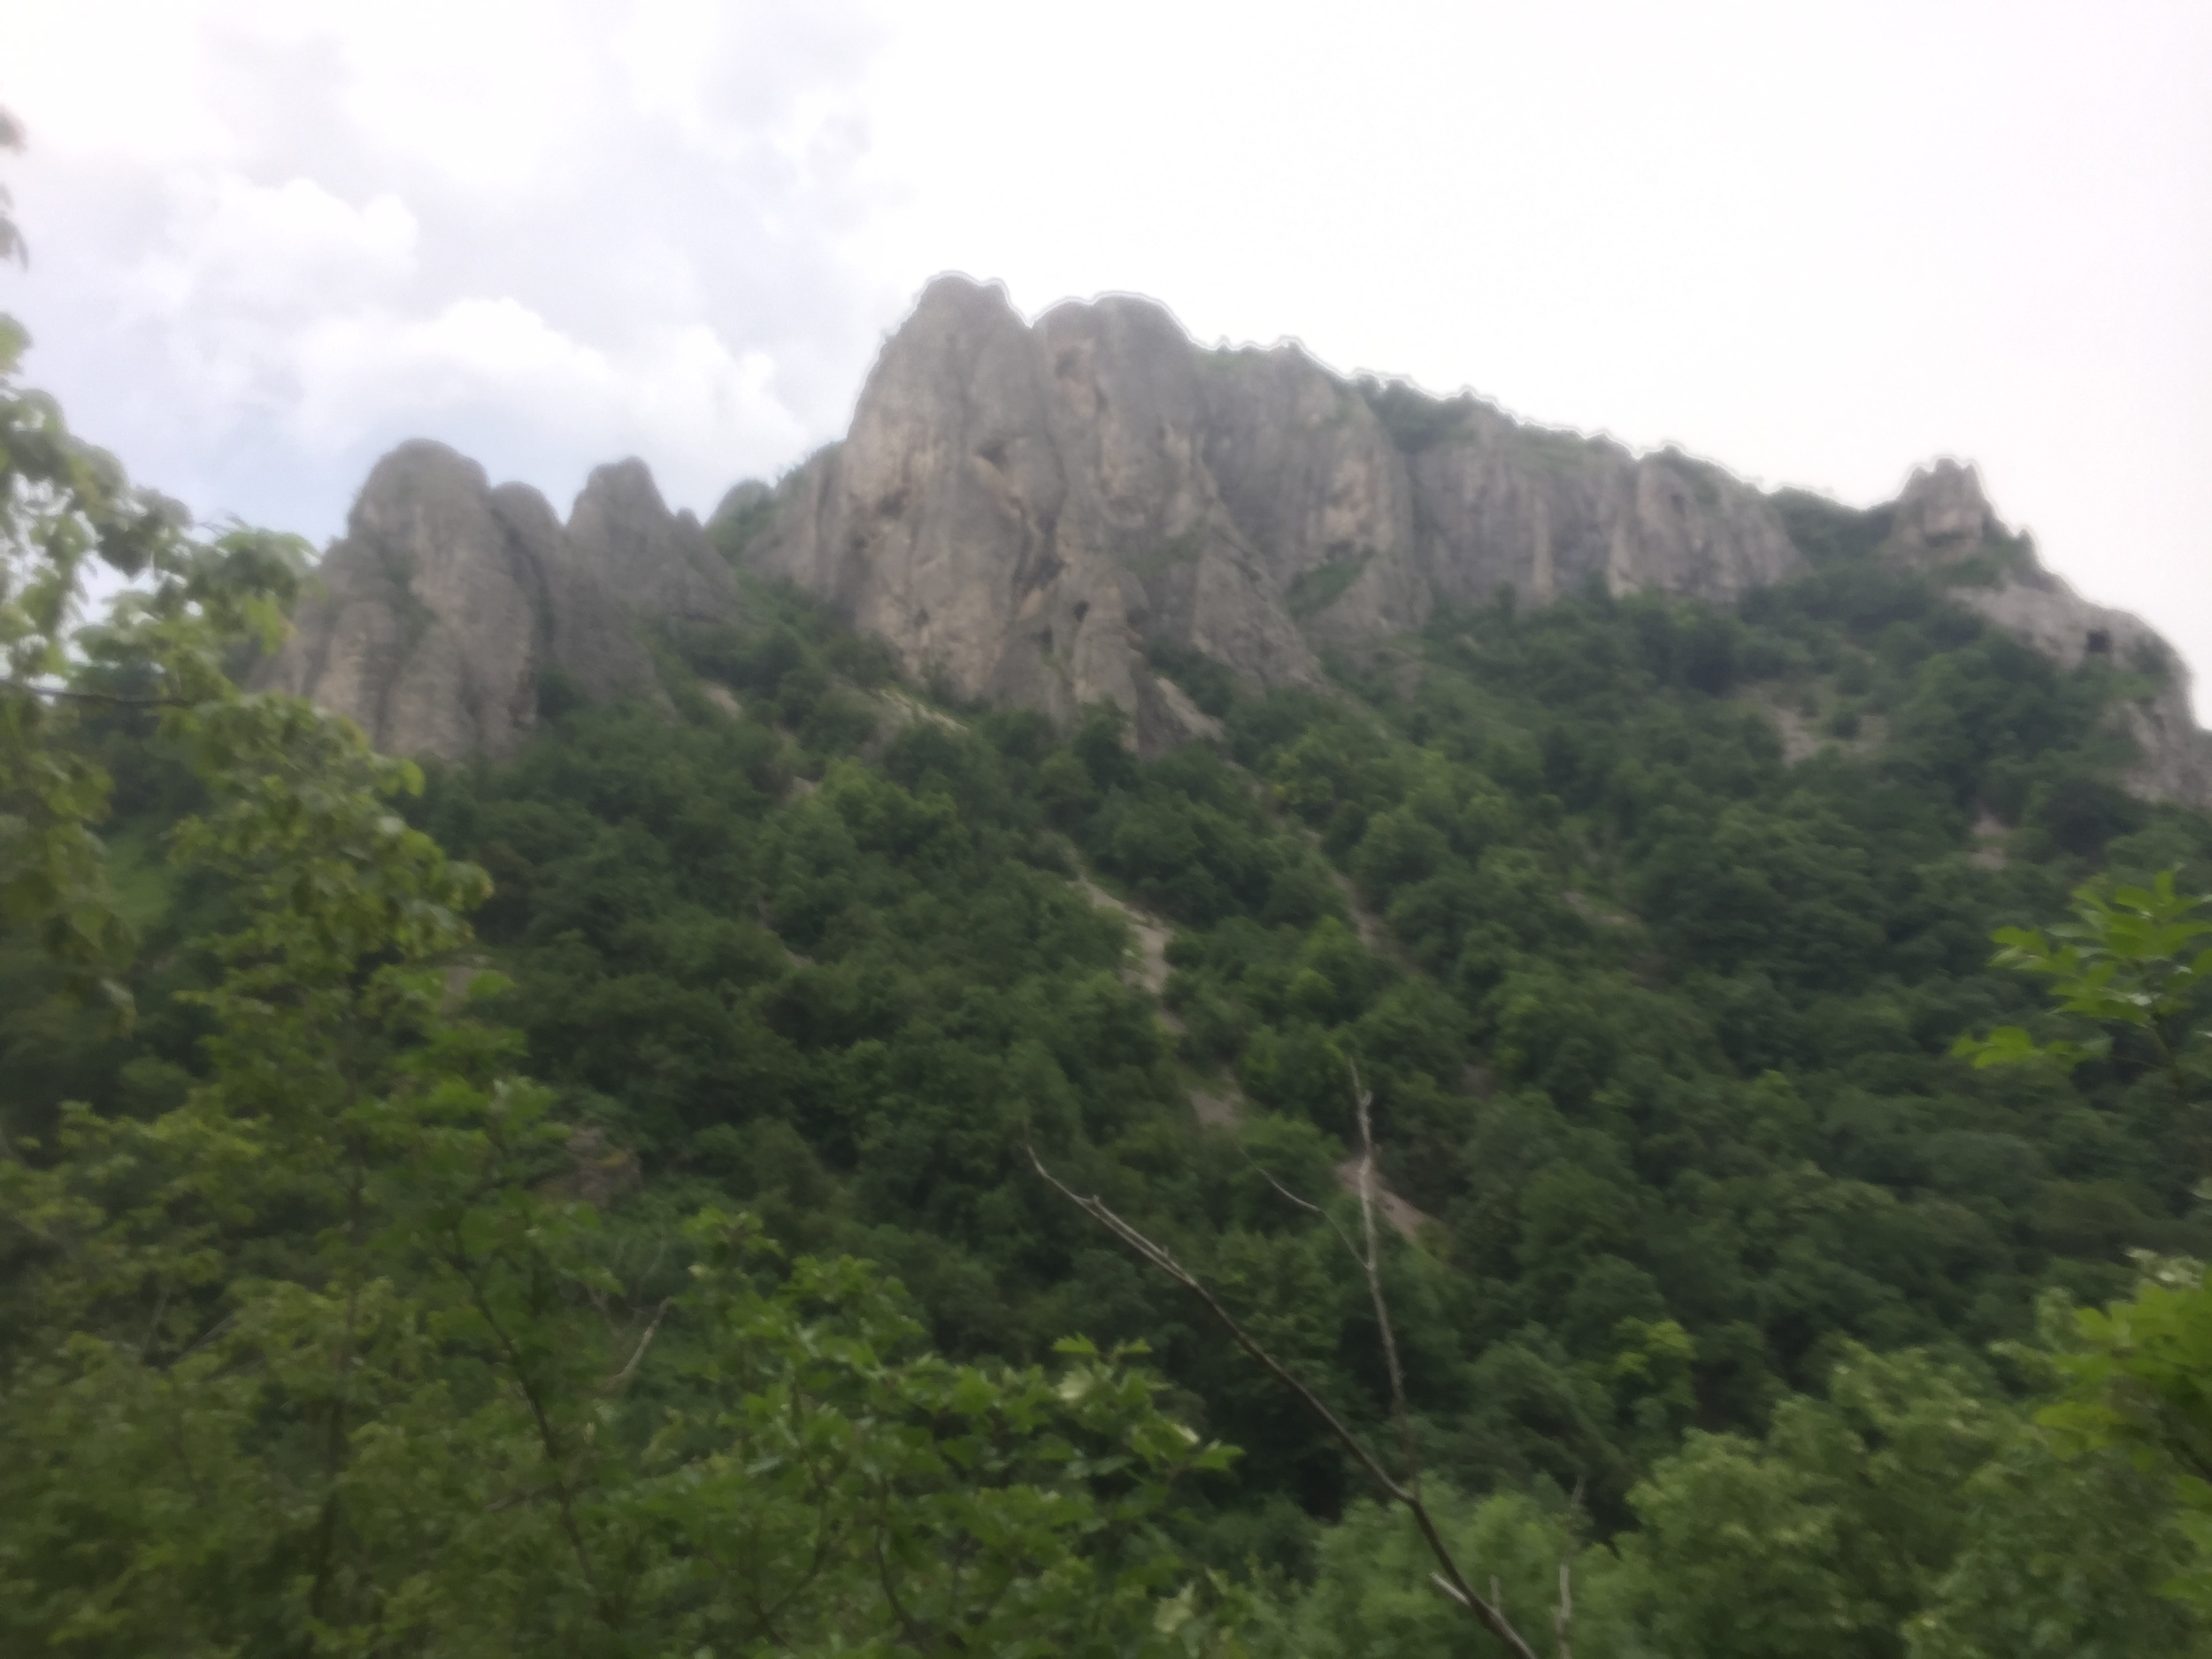 A view of some rocks. Unfortunately my camera lens was covered in sweat when I took this shot.